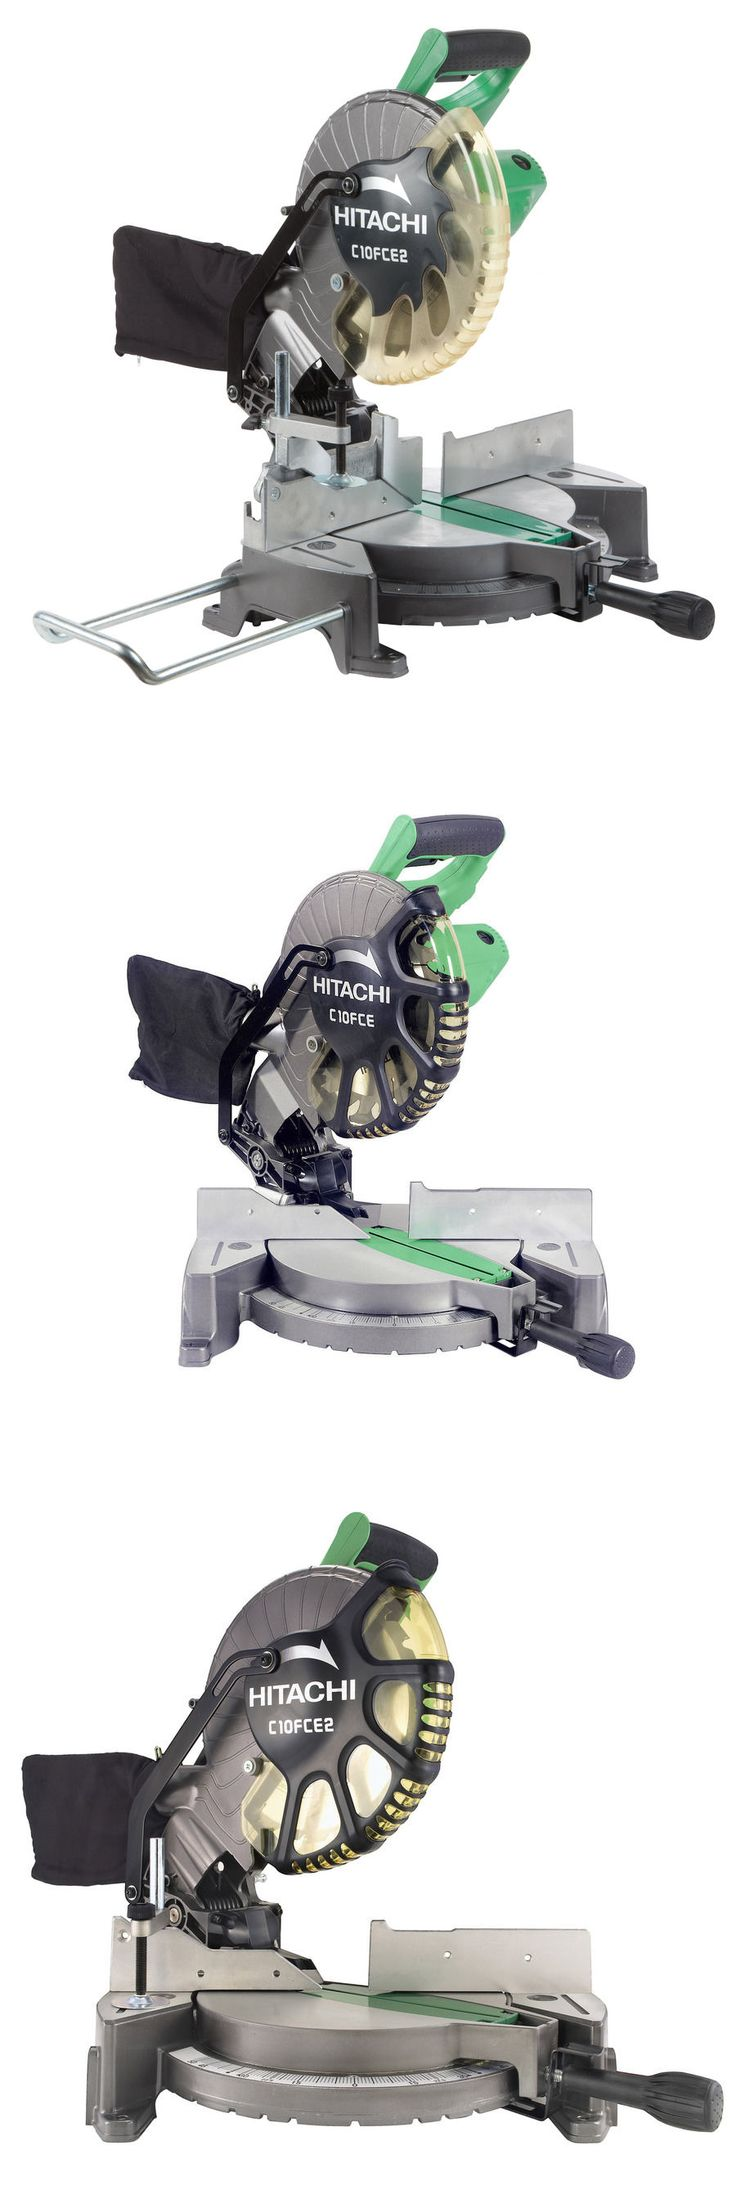 Miter and Chop Saws 20787: Hitachi Bevel Compound Miter Saw - 10 In 15 Amp - Lightweight And Portable -> BUY IT NOW ONLY: $145.99 on eBay!